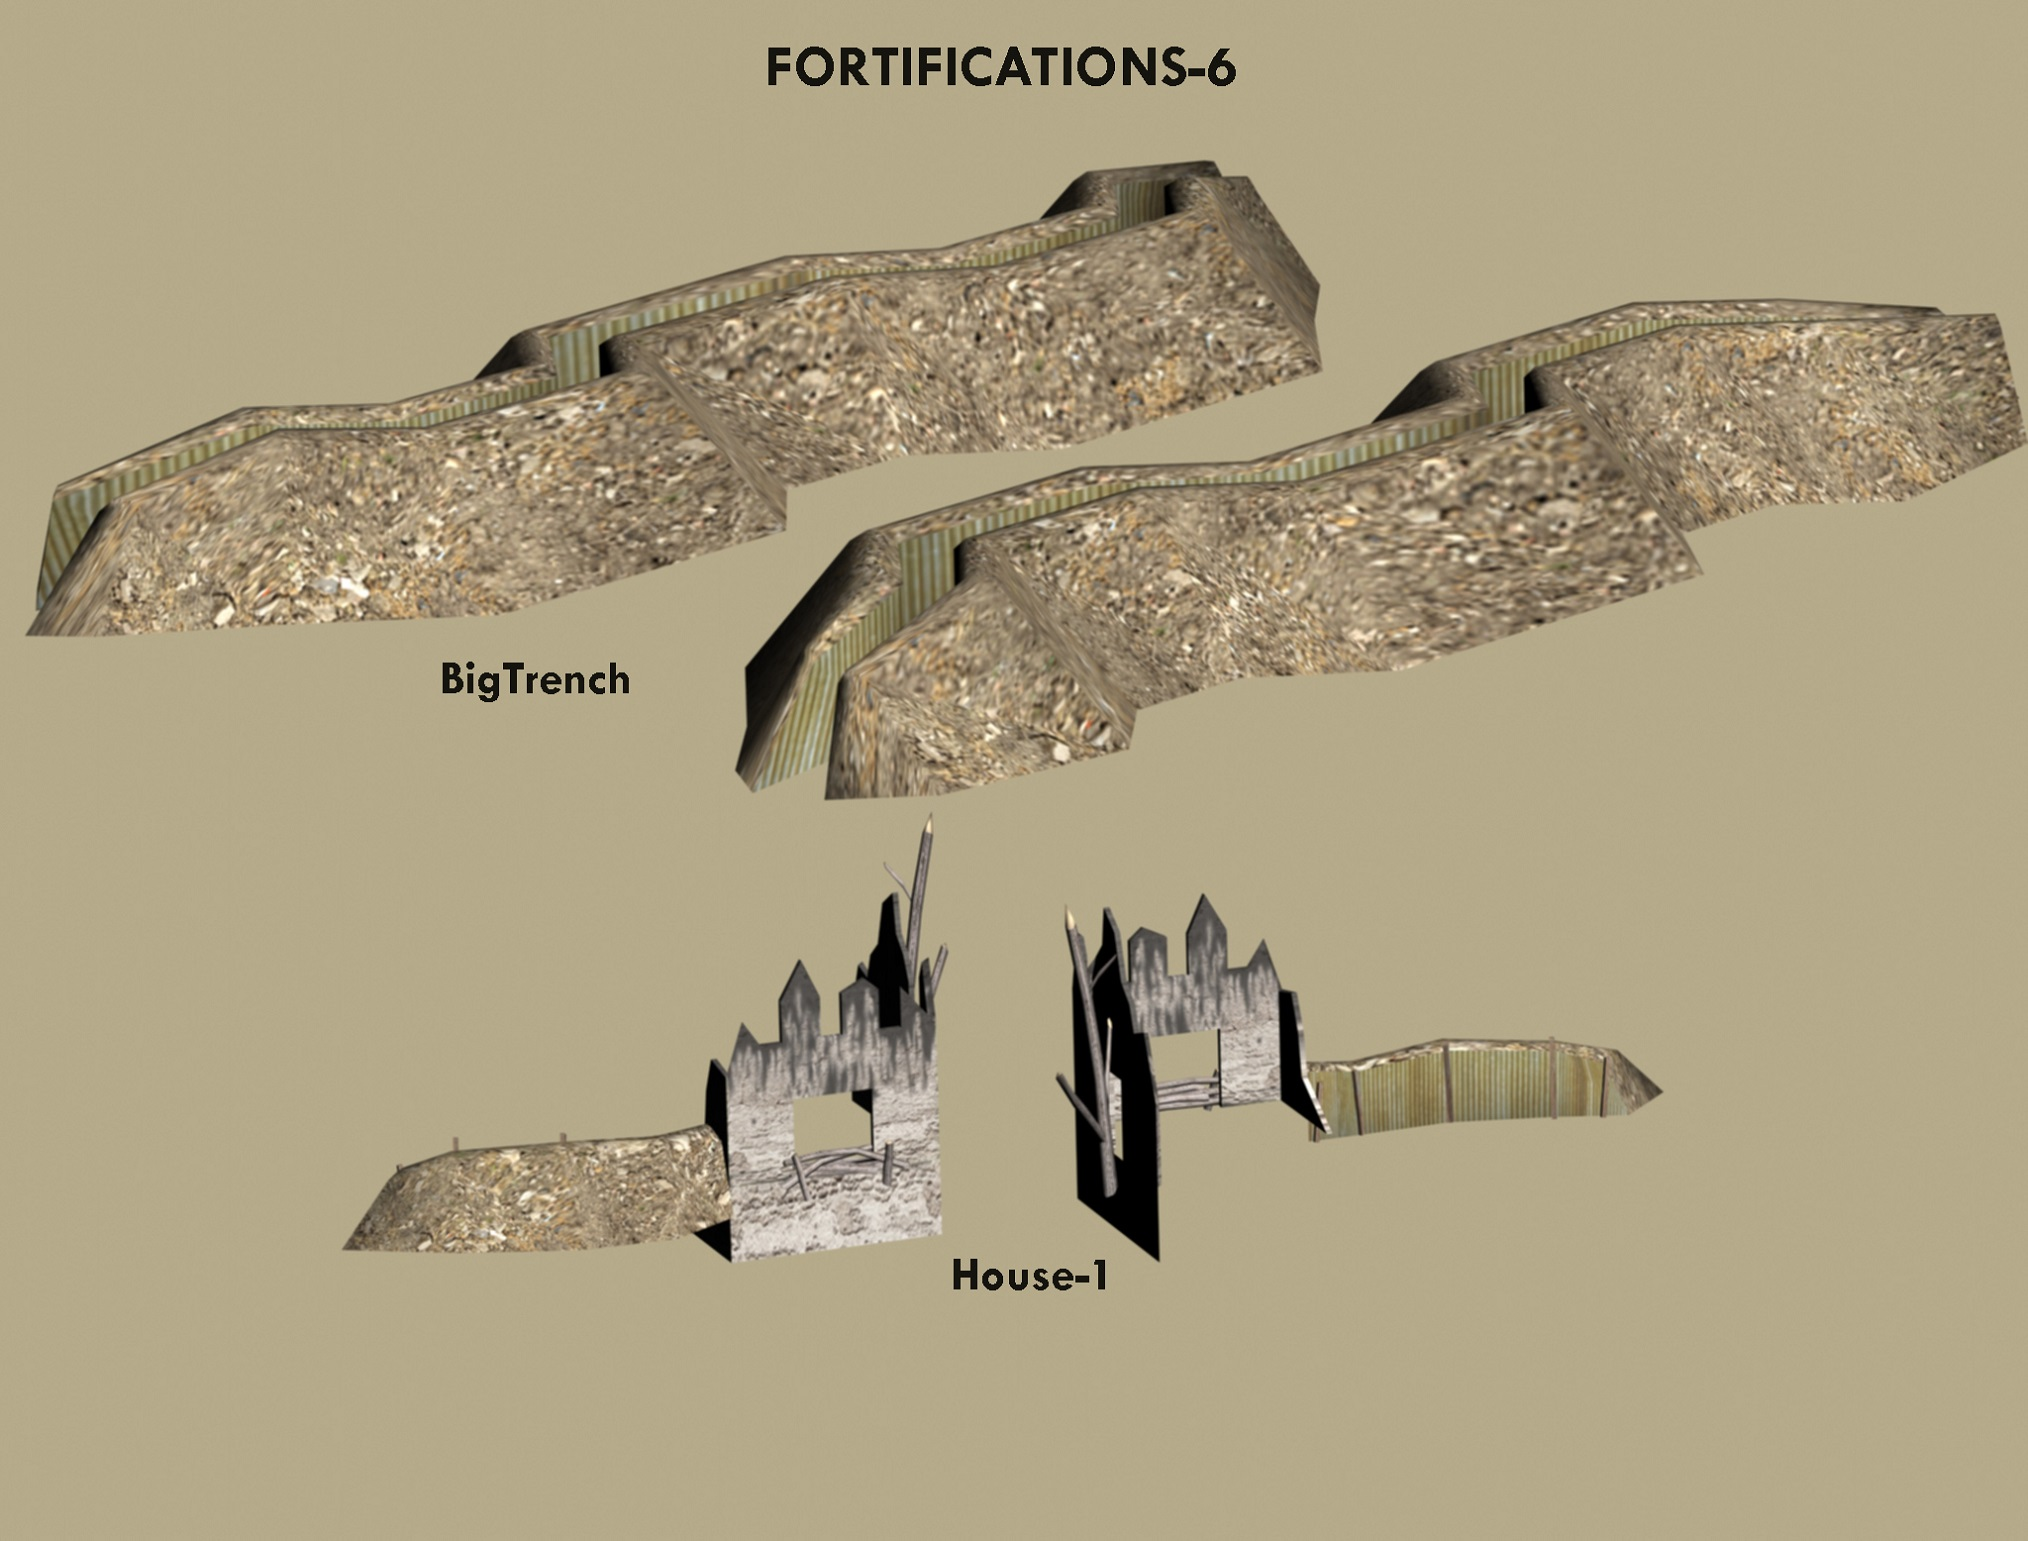 forts-4reduced.jpg